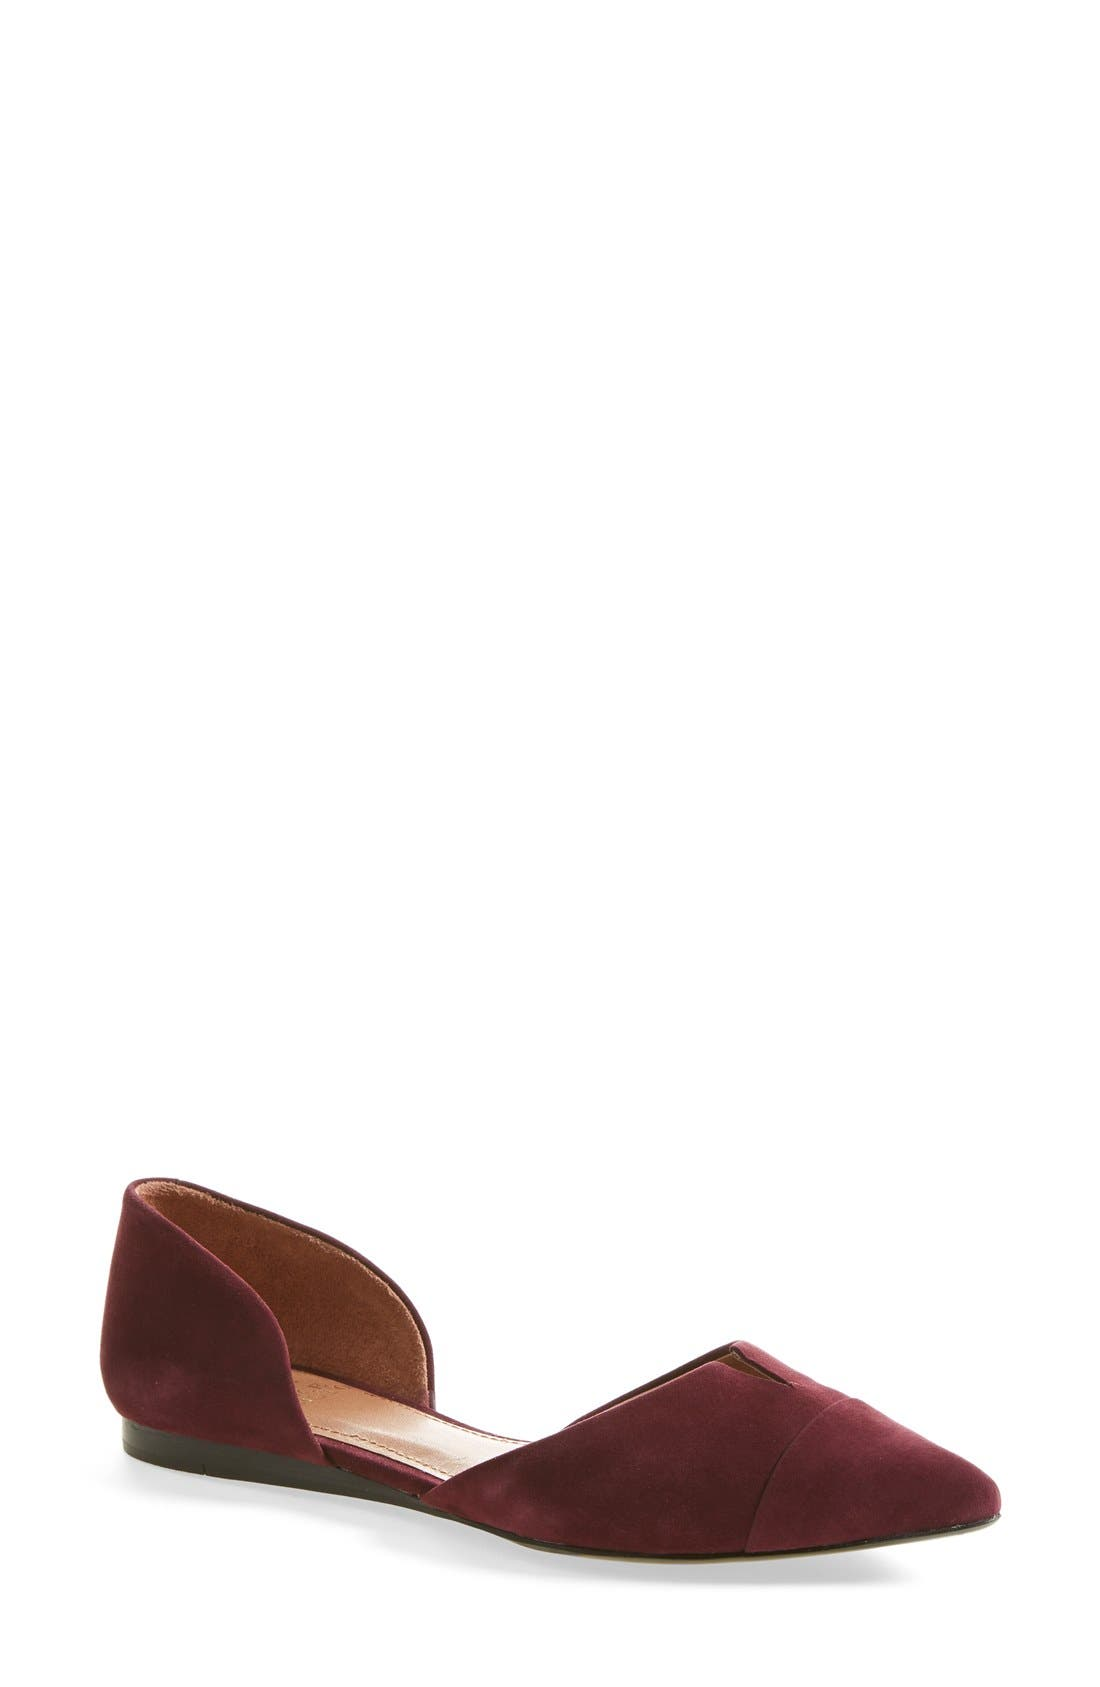 Alternate Image 1 Selected - Vince Camuto 'Halia' d'Orsay Pointy Toe Flat (Women)